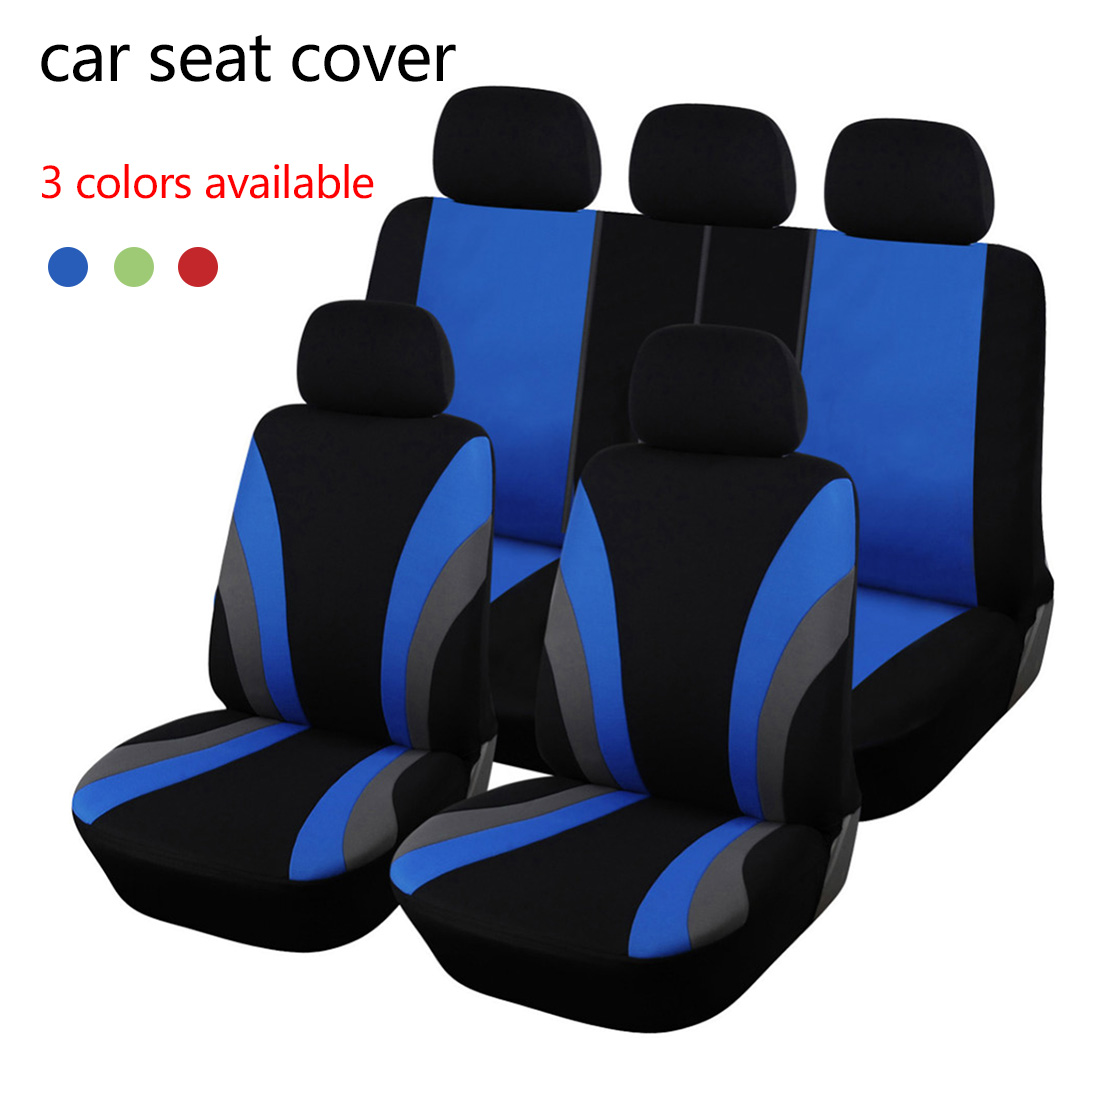 Dewtreetali 9pcs Full Set Universal Car Seat Covers Fit Most SUV Truck Cars Car Seat Protector Car Styling 3 Color Seat Cover